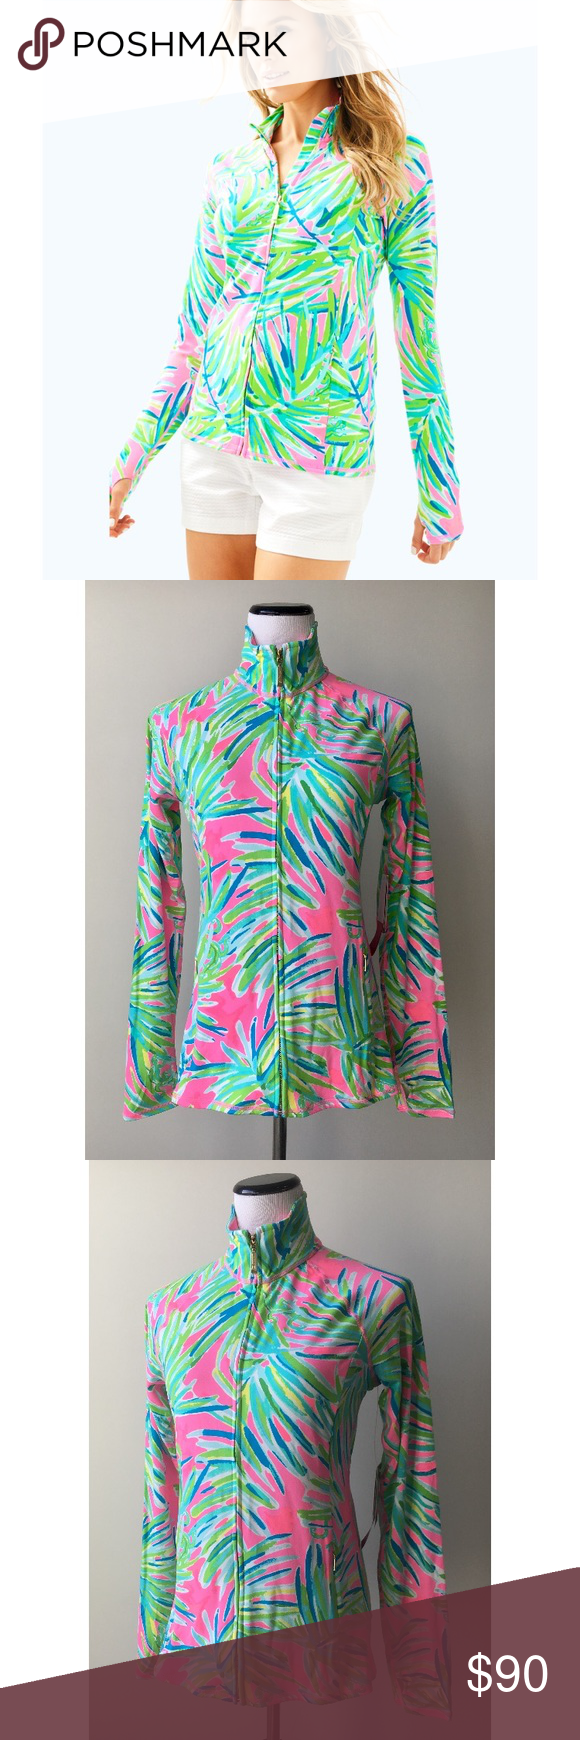 0c5a4b60f1e3e2 Lilly Pulitzer Luxletic Serena Jacket Serena Luxletic fitted and printed  jacket • new with tags 🏷 •